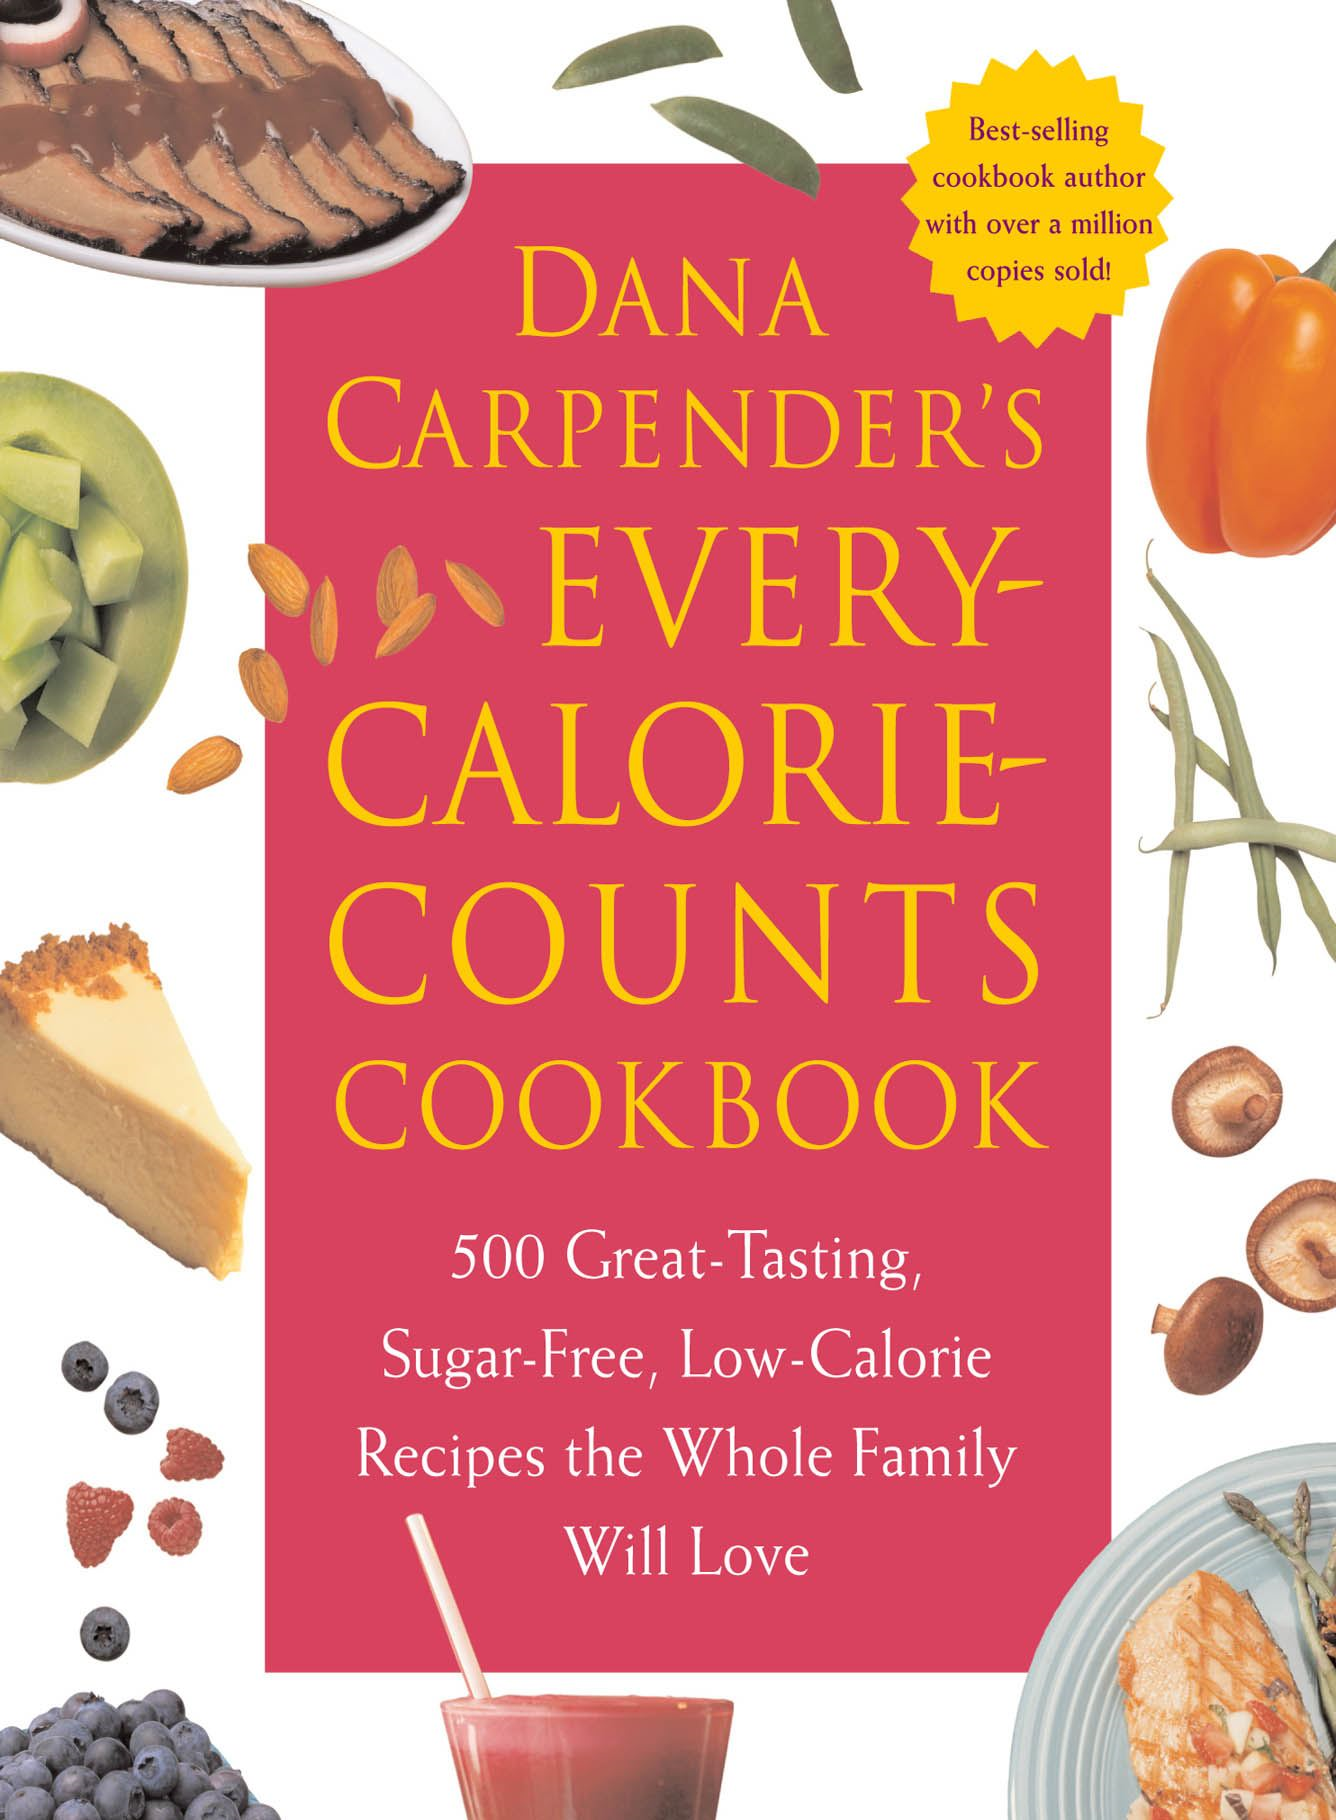 Dana Carpender's Every Calorie Counts Cookbook: 500 Great-Tasting, Sugar-Free, Low-Calorie Recipes that the Whole Family Will Love By: Dana Carpender